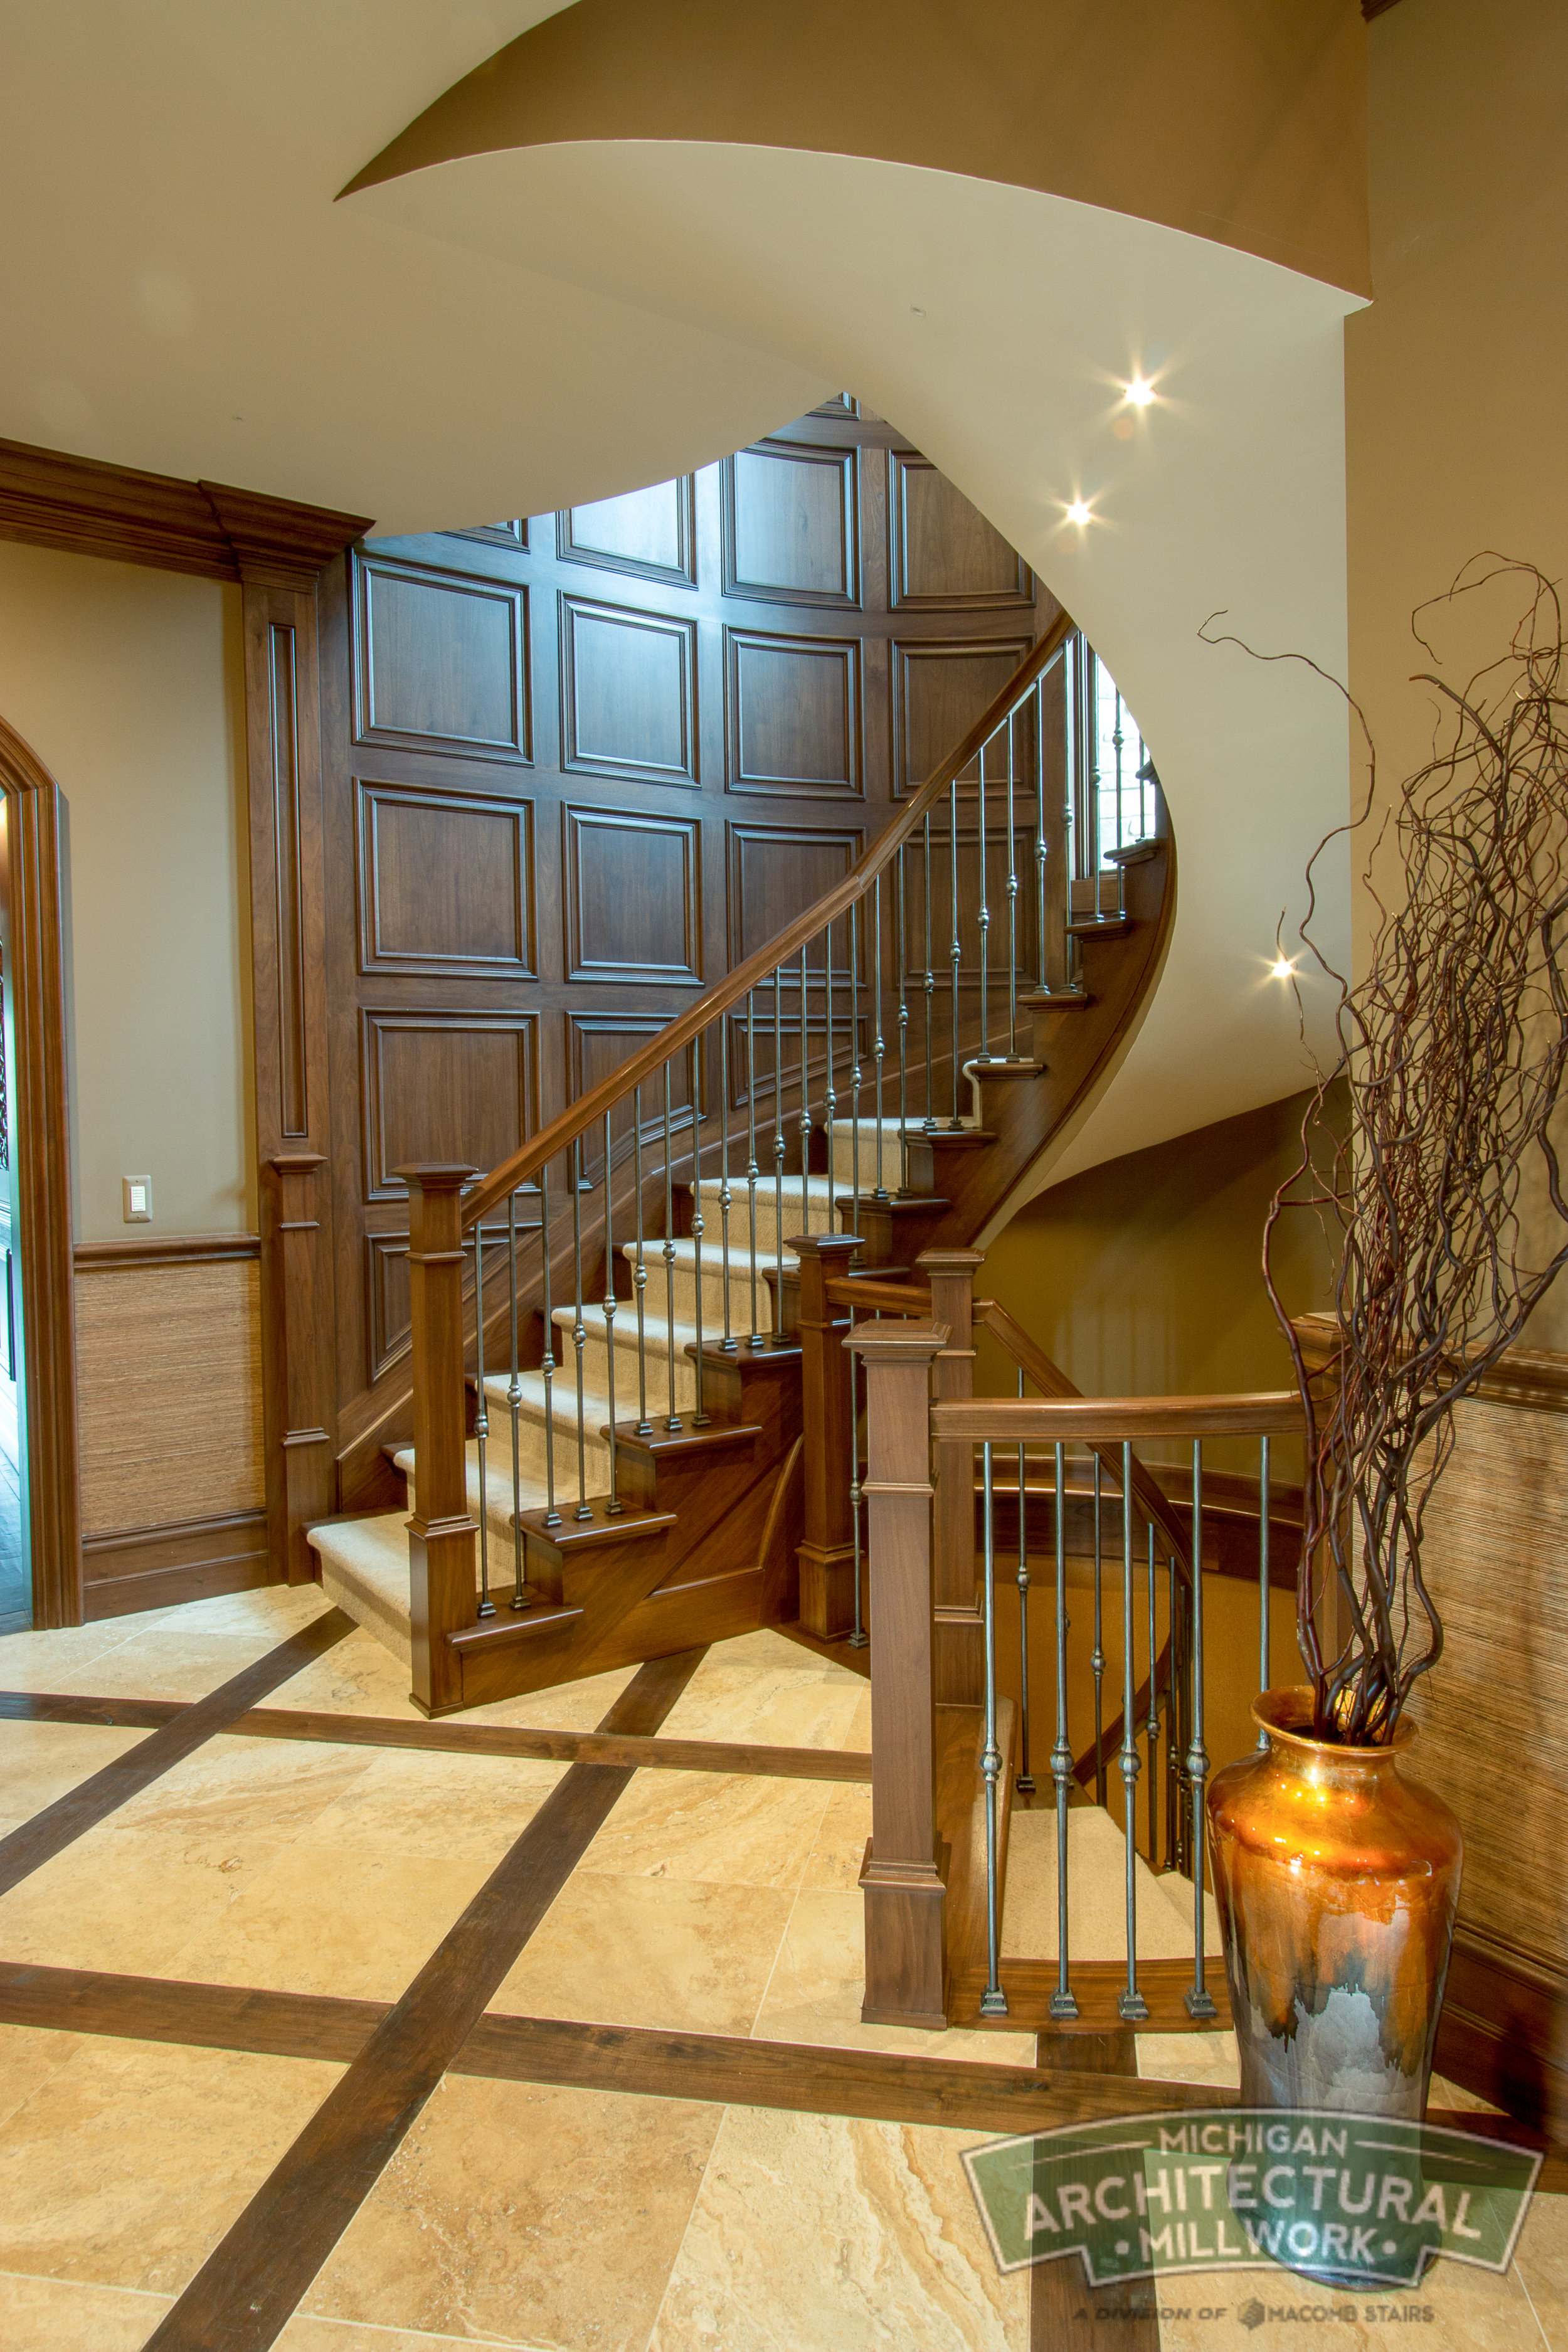 Michigan Architectural Millwork- Moulding and Millwork Photo-64.jpg